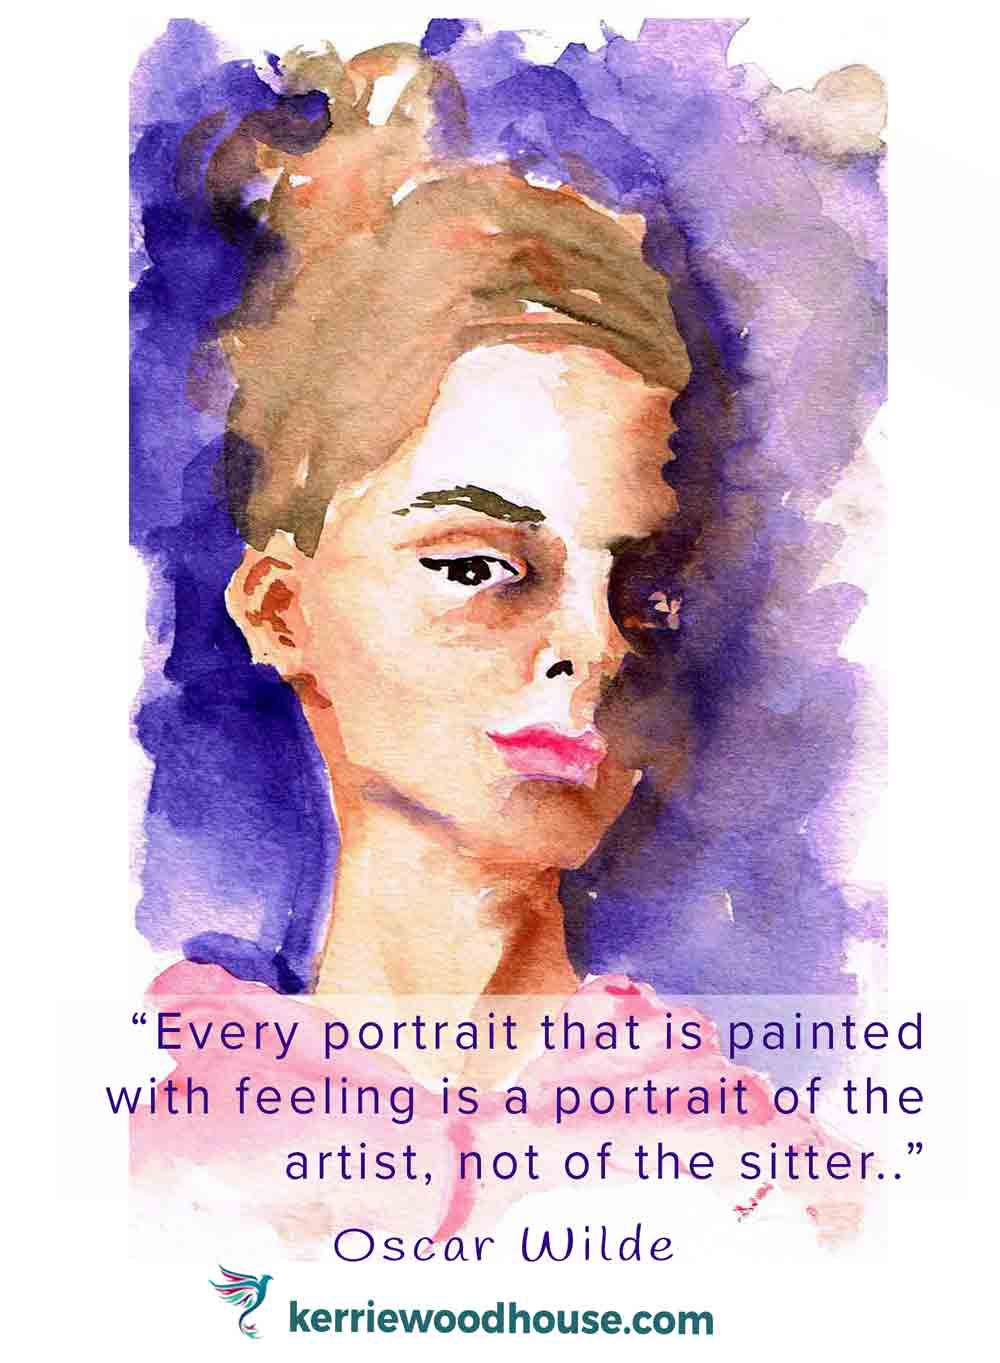 every-portrait-that-is-painted-with-feeling-is-a-portrait-of-the-artist-kw.jpg